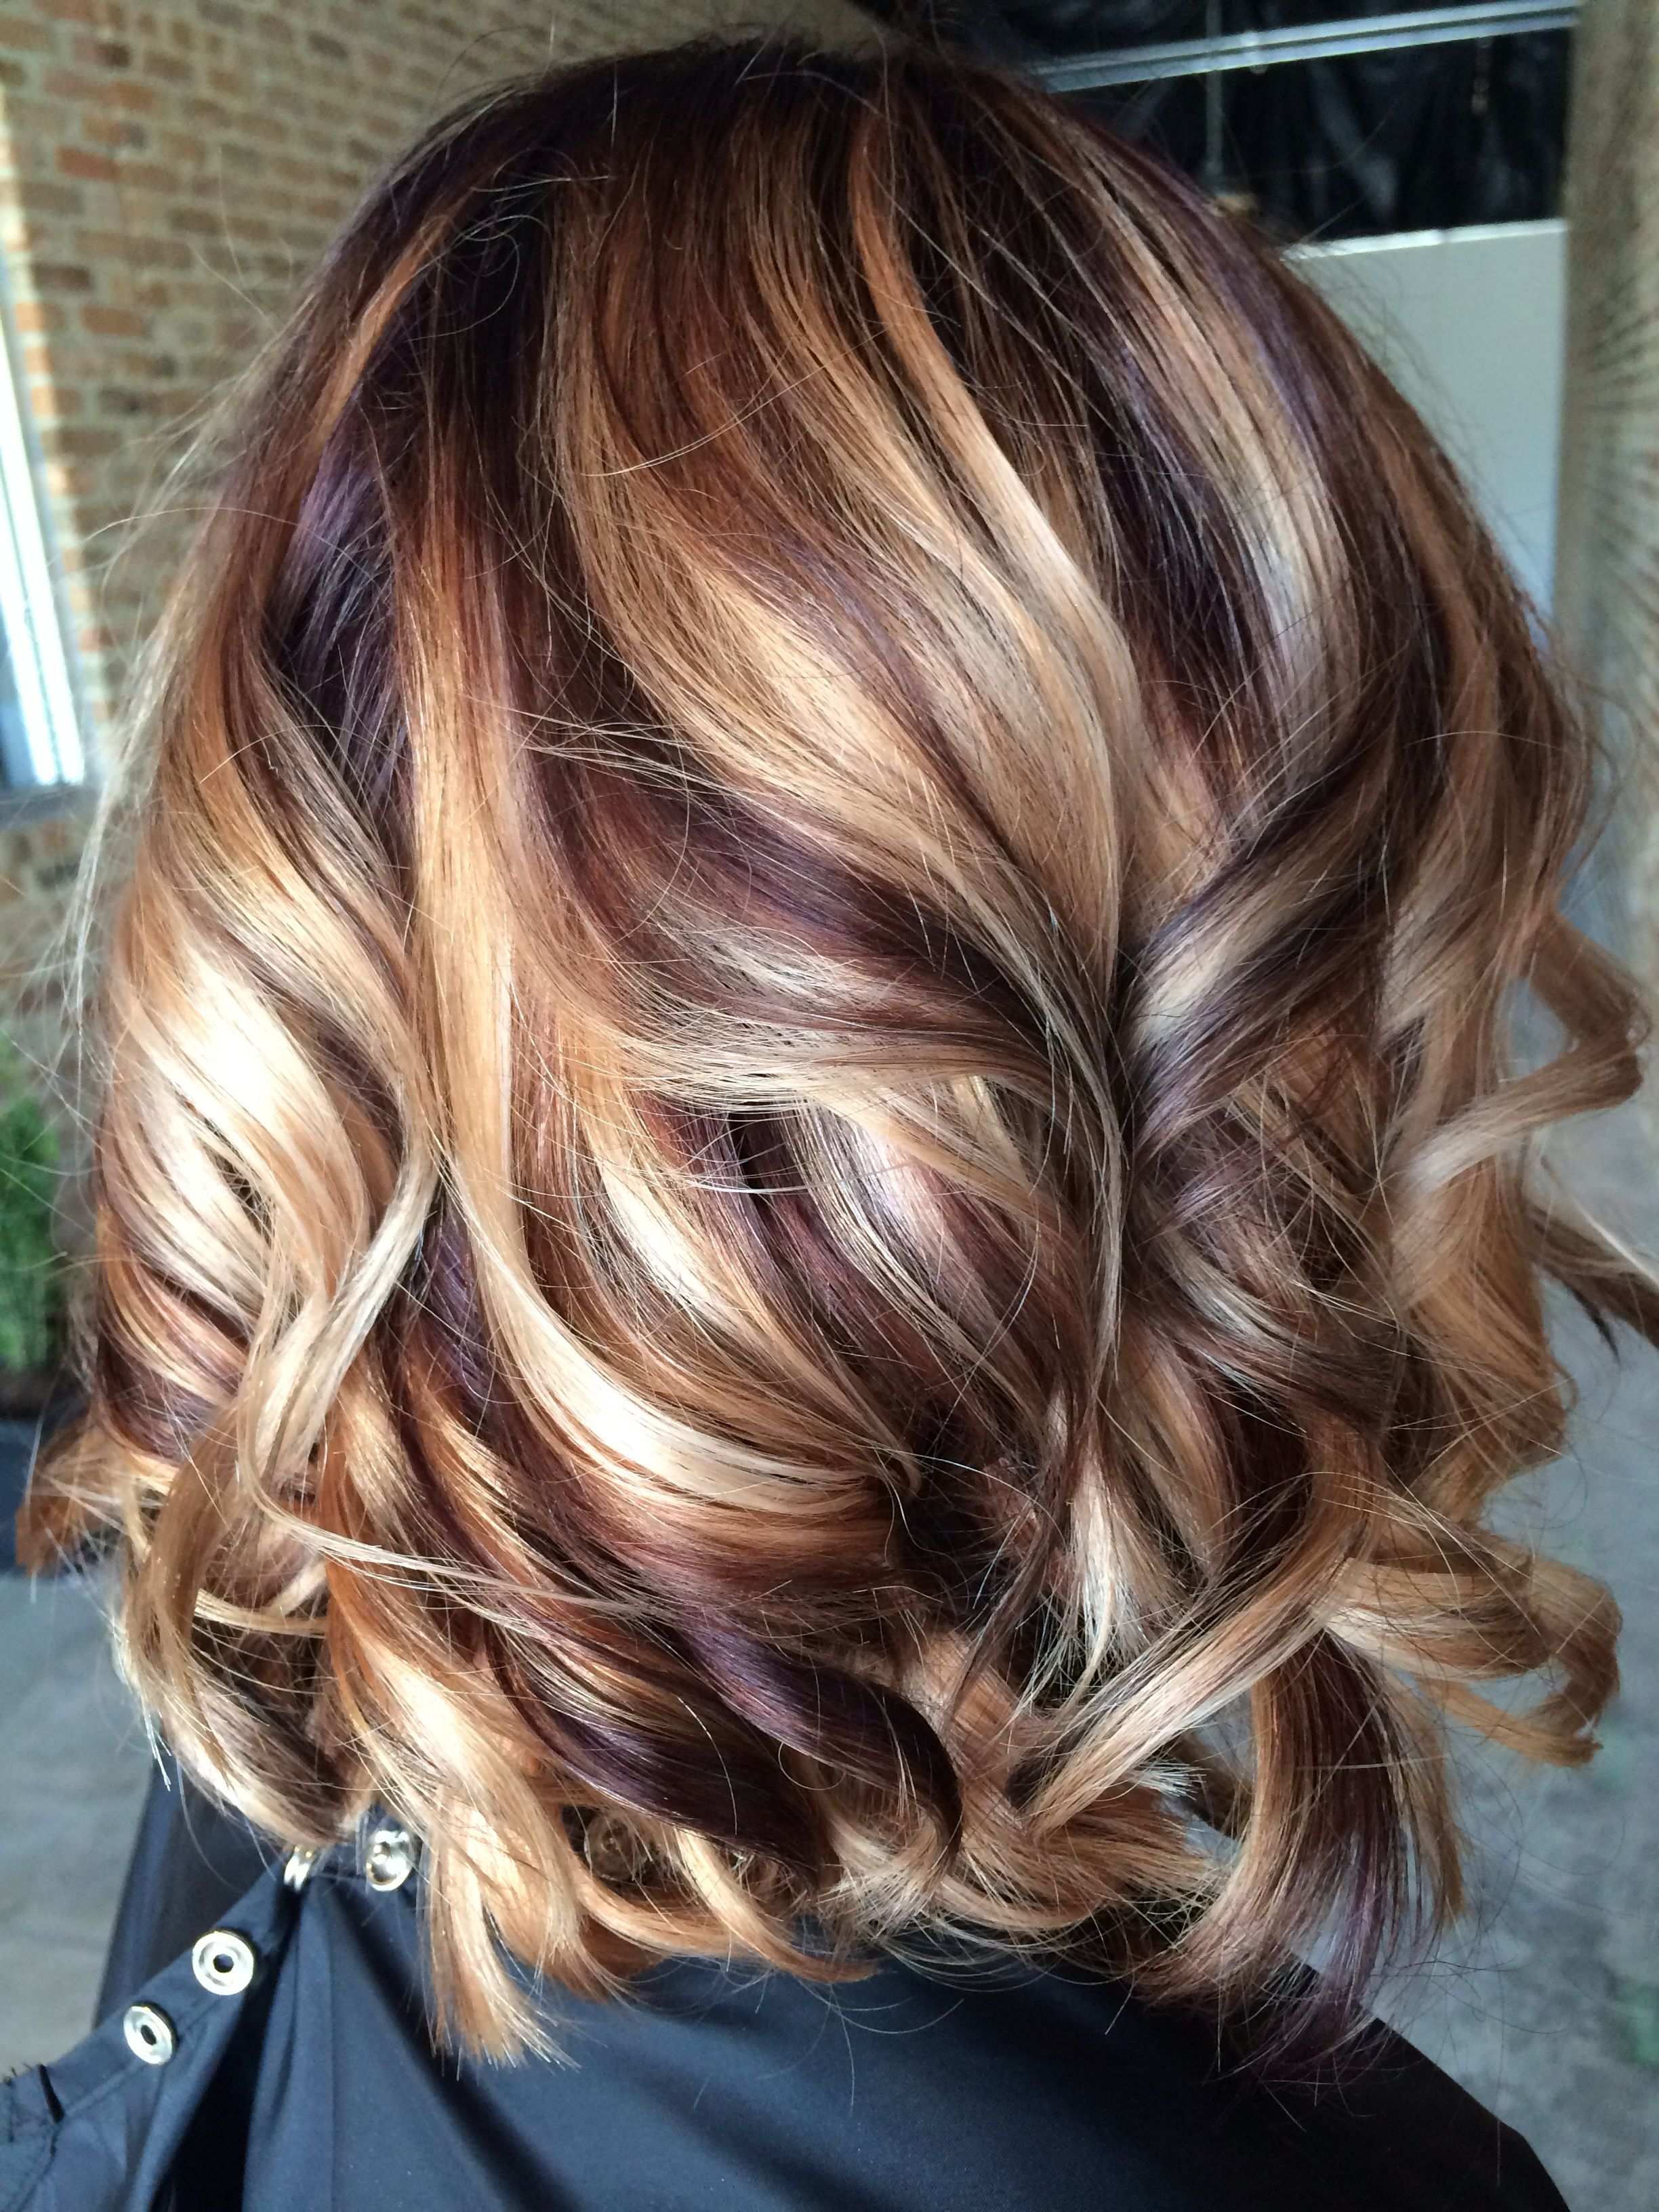 Latest Medium Hairstyles And Highlights Within 16 Wonderful Medium Hairstyles For 2019 (Gallery 4 of 20)